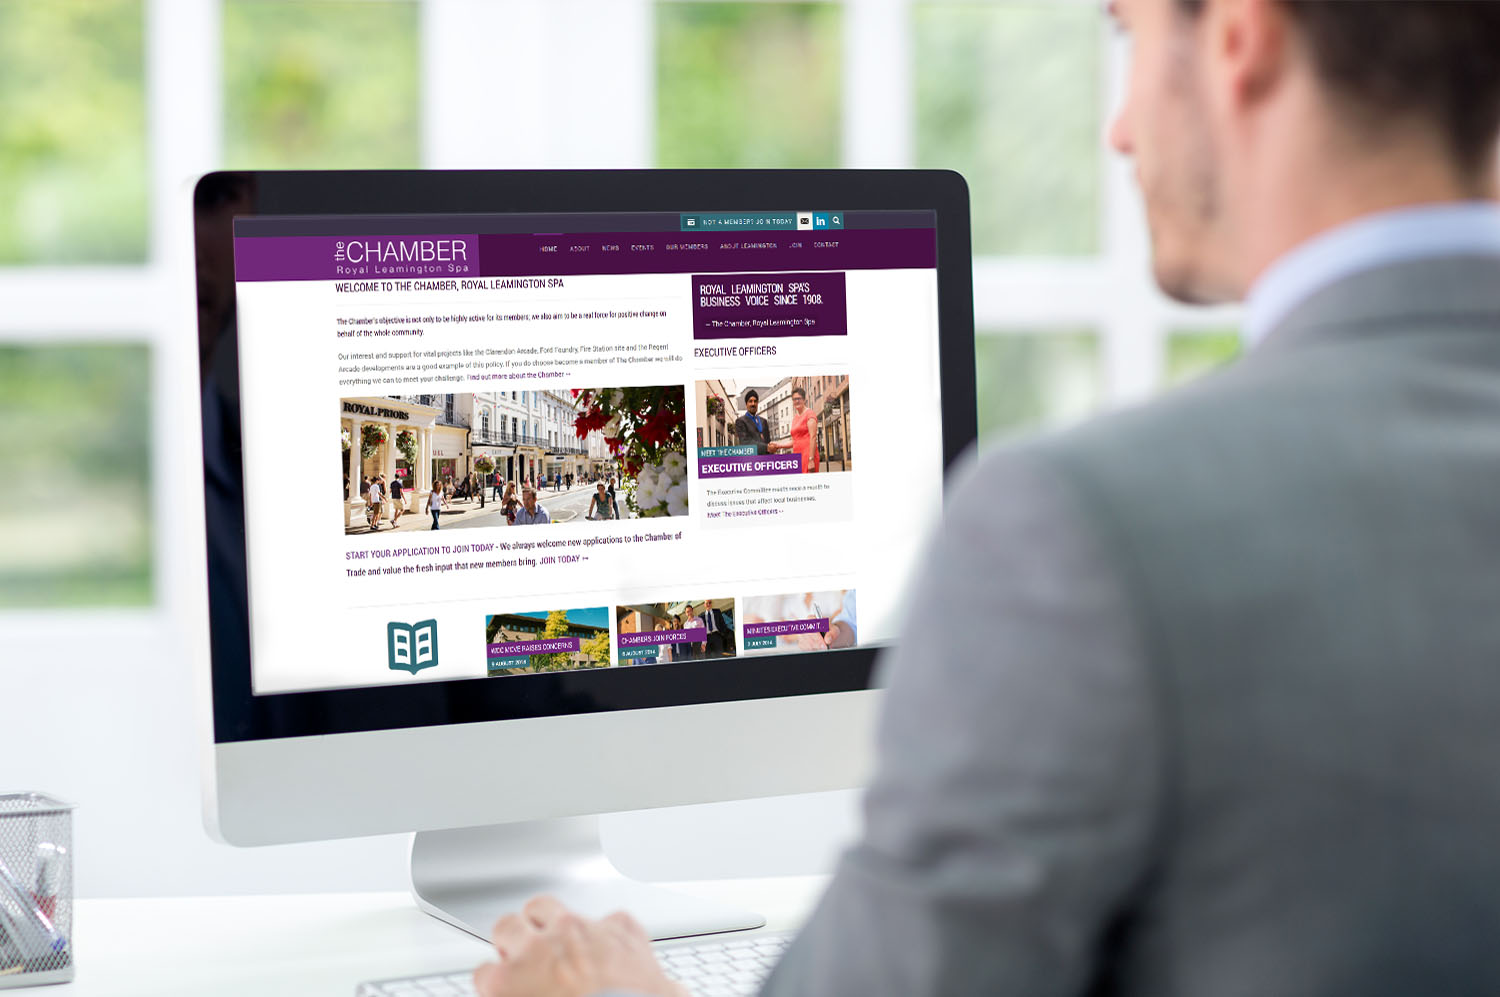 Leamington Chamber Website Design - Home Screen